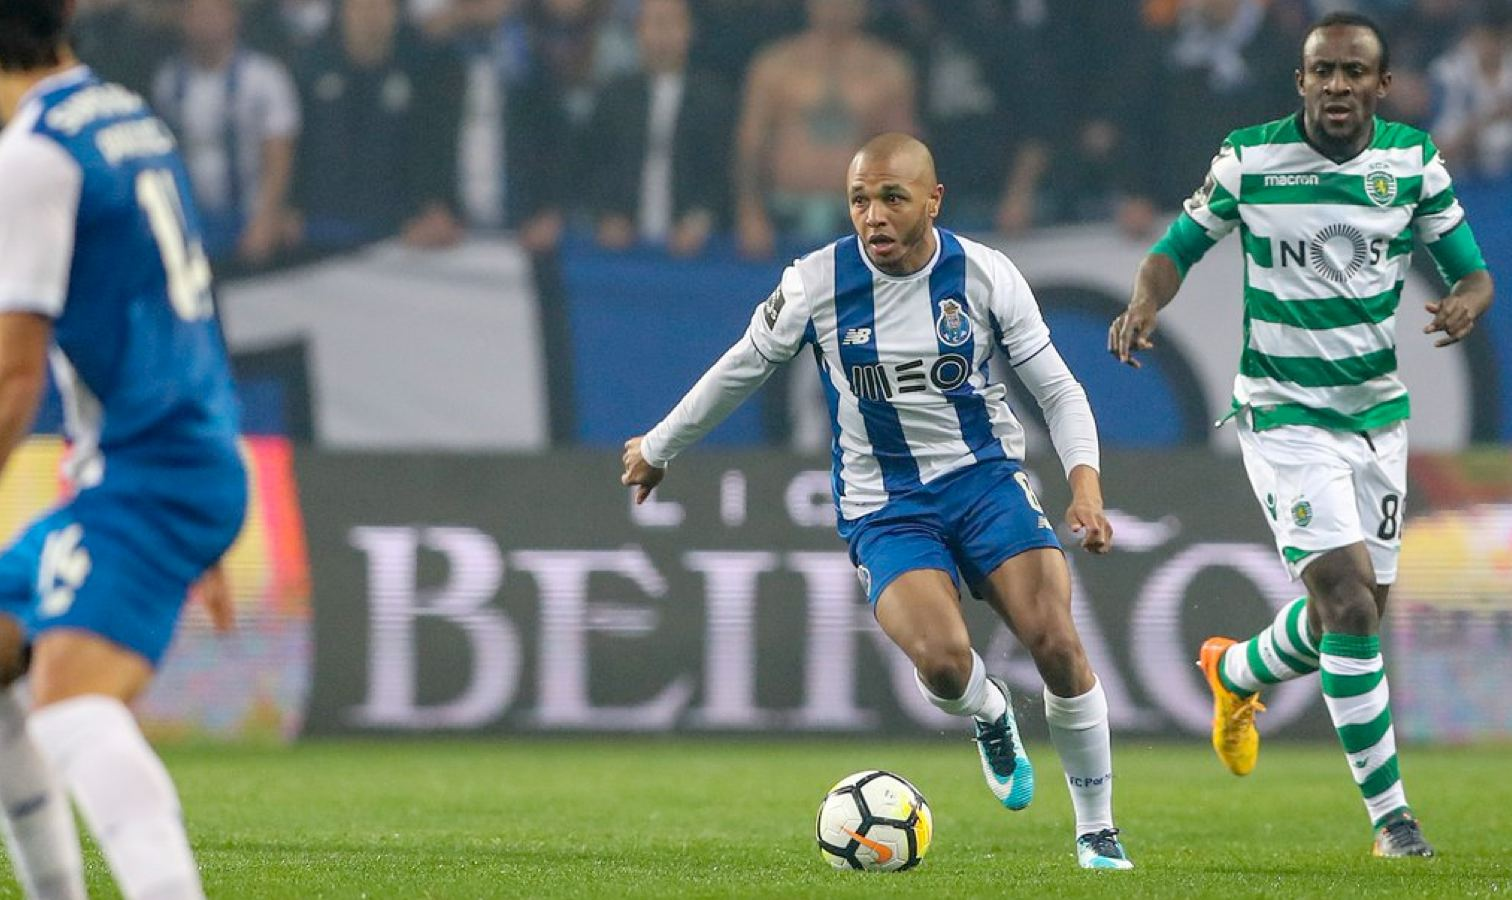 brahimi contre sporting